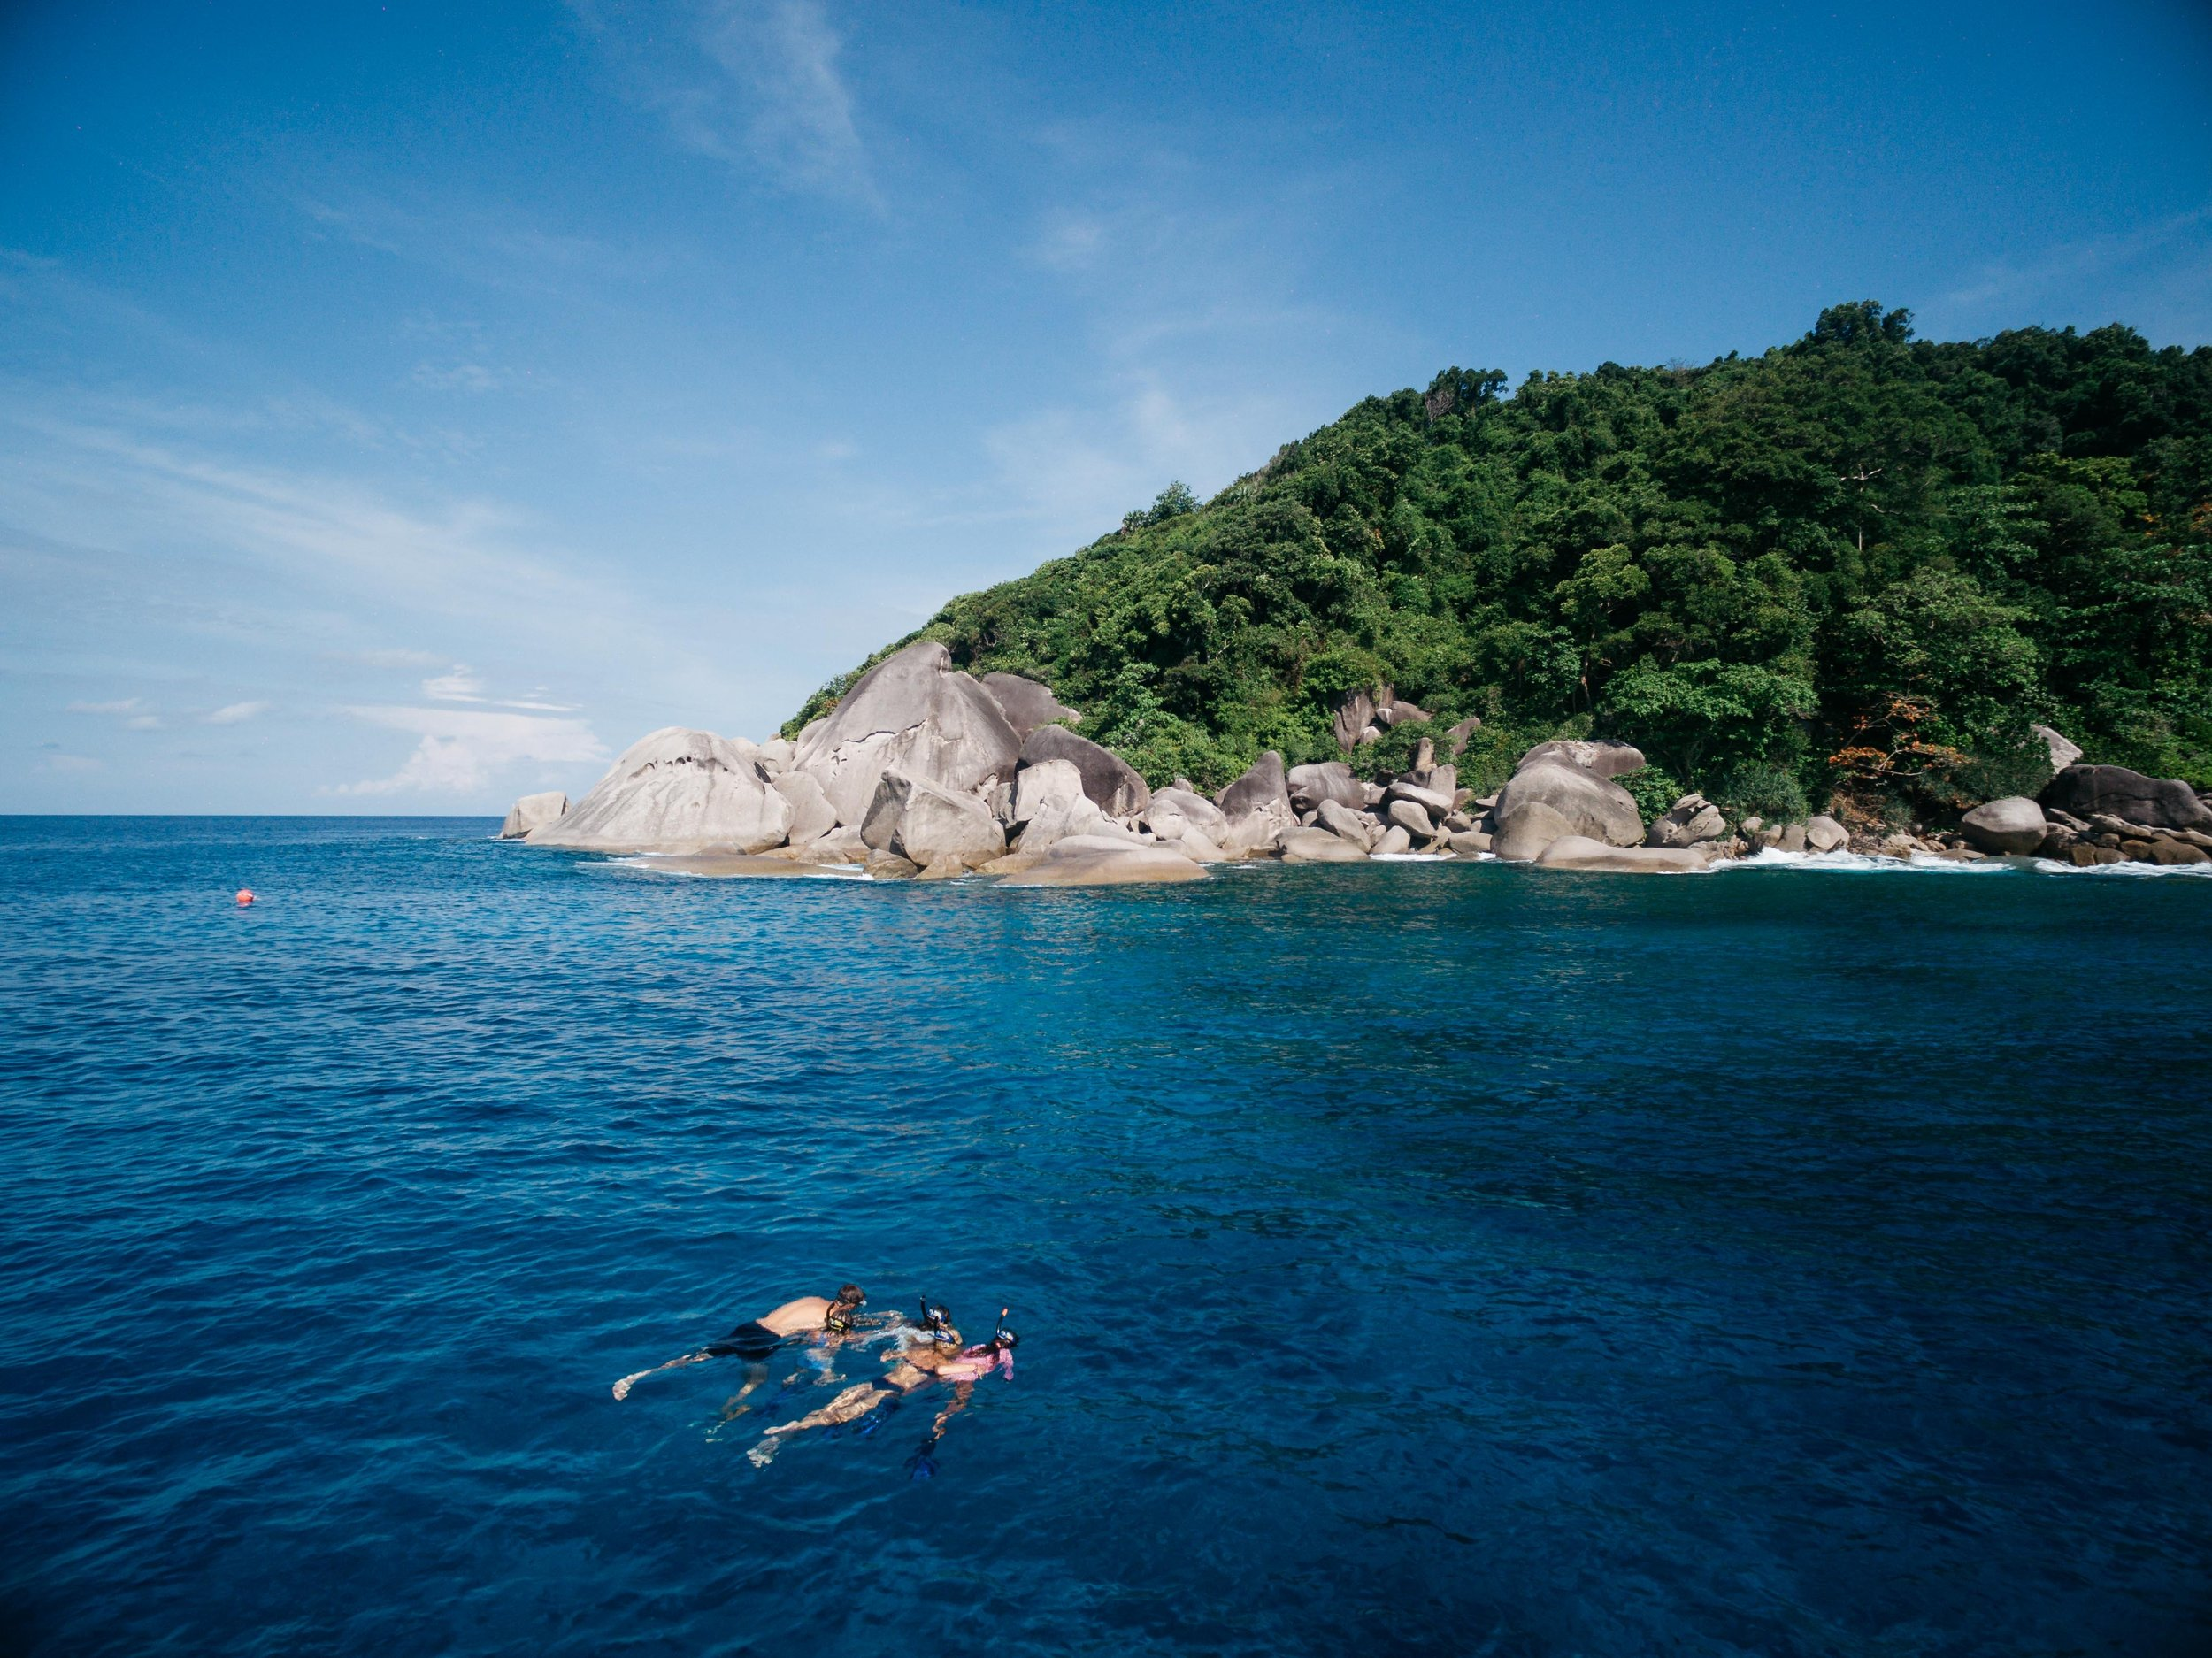 Snorkeling around the beautiful Similan Islands off the southern coast of Phuket, Thailand during our 3 day Live-aboard boat  trip.